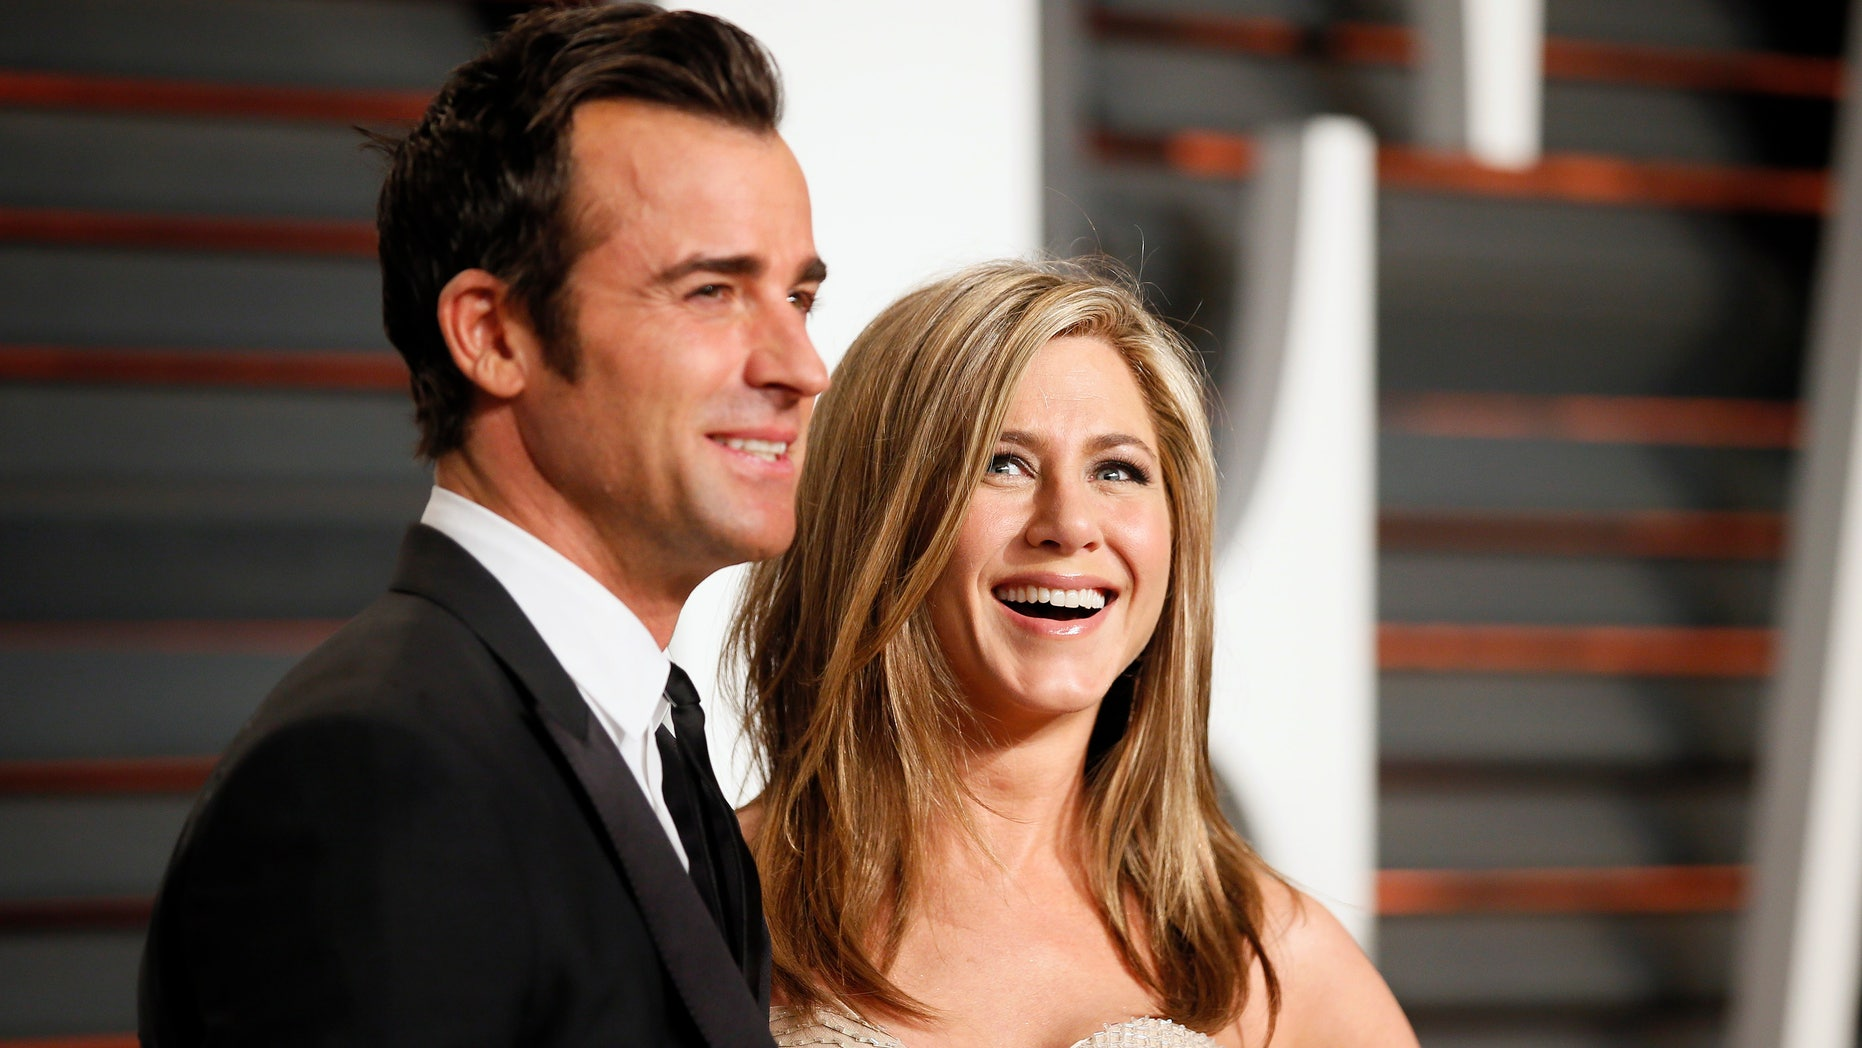 Actress Jennifer Aniston and Justin Theroux arrive at the 2015 Vanity Fair Oscar Party in Beverly Hills, California February 22, 2015. REUTERS/Danny Moloshok